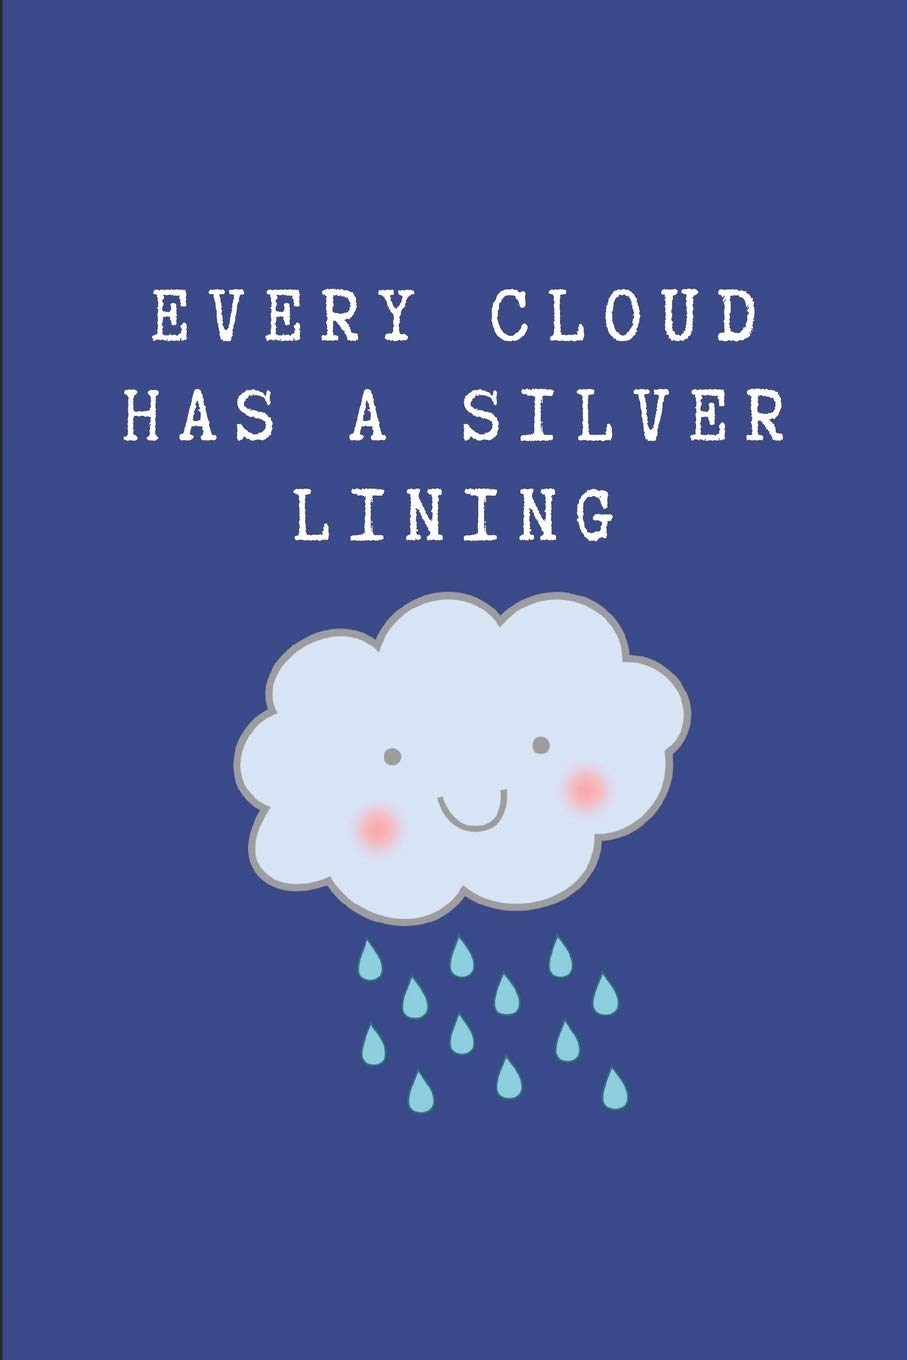 Amazon Com Every Cloud Has A Silver Lining Custom Designed Notebook Journal 9781728957883 Wellnoted Happily Books